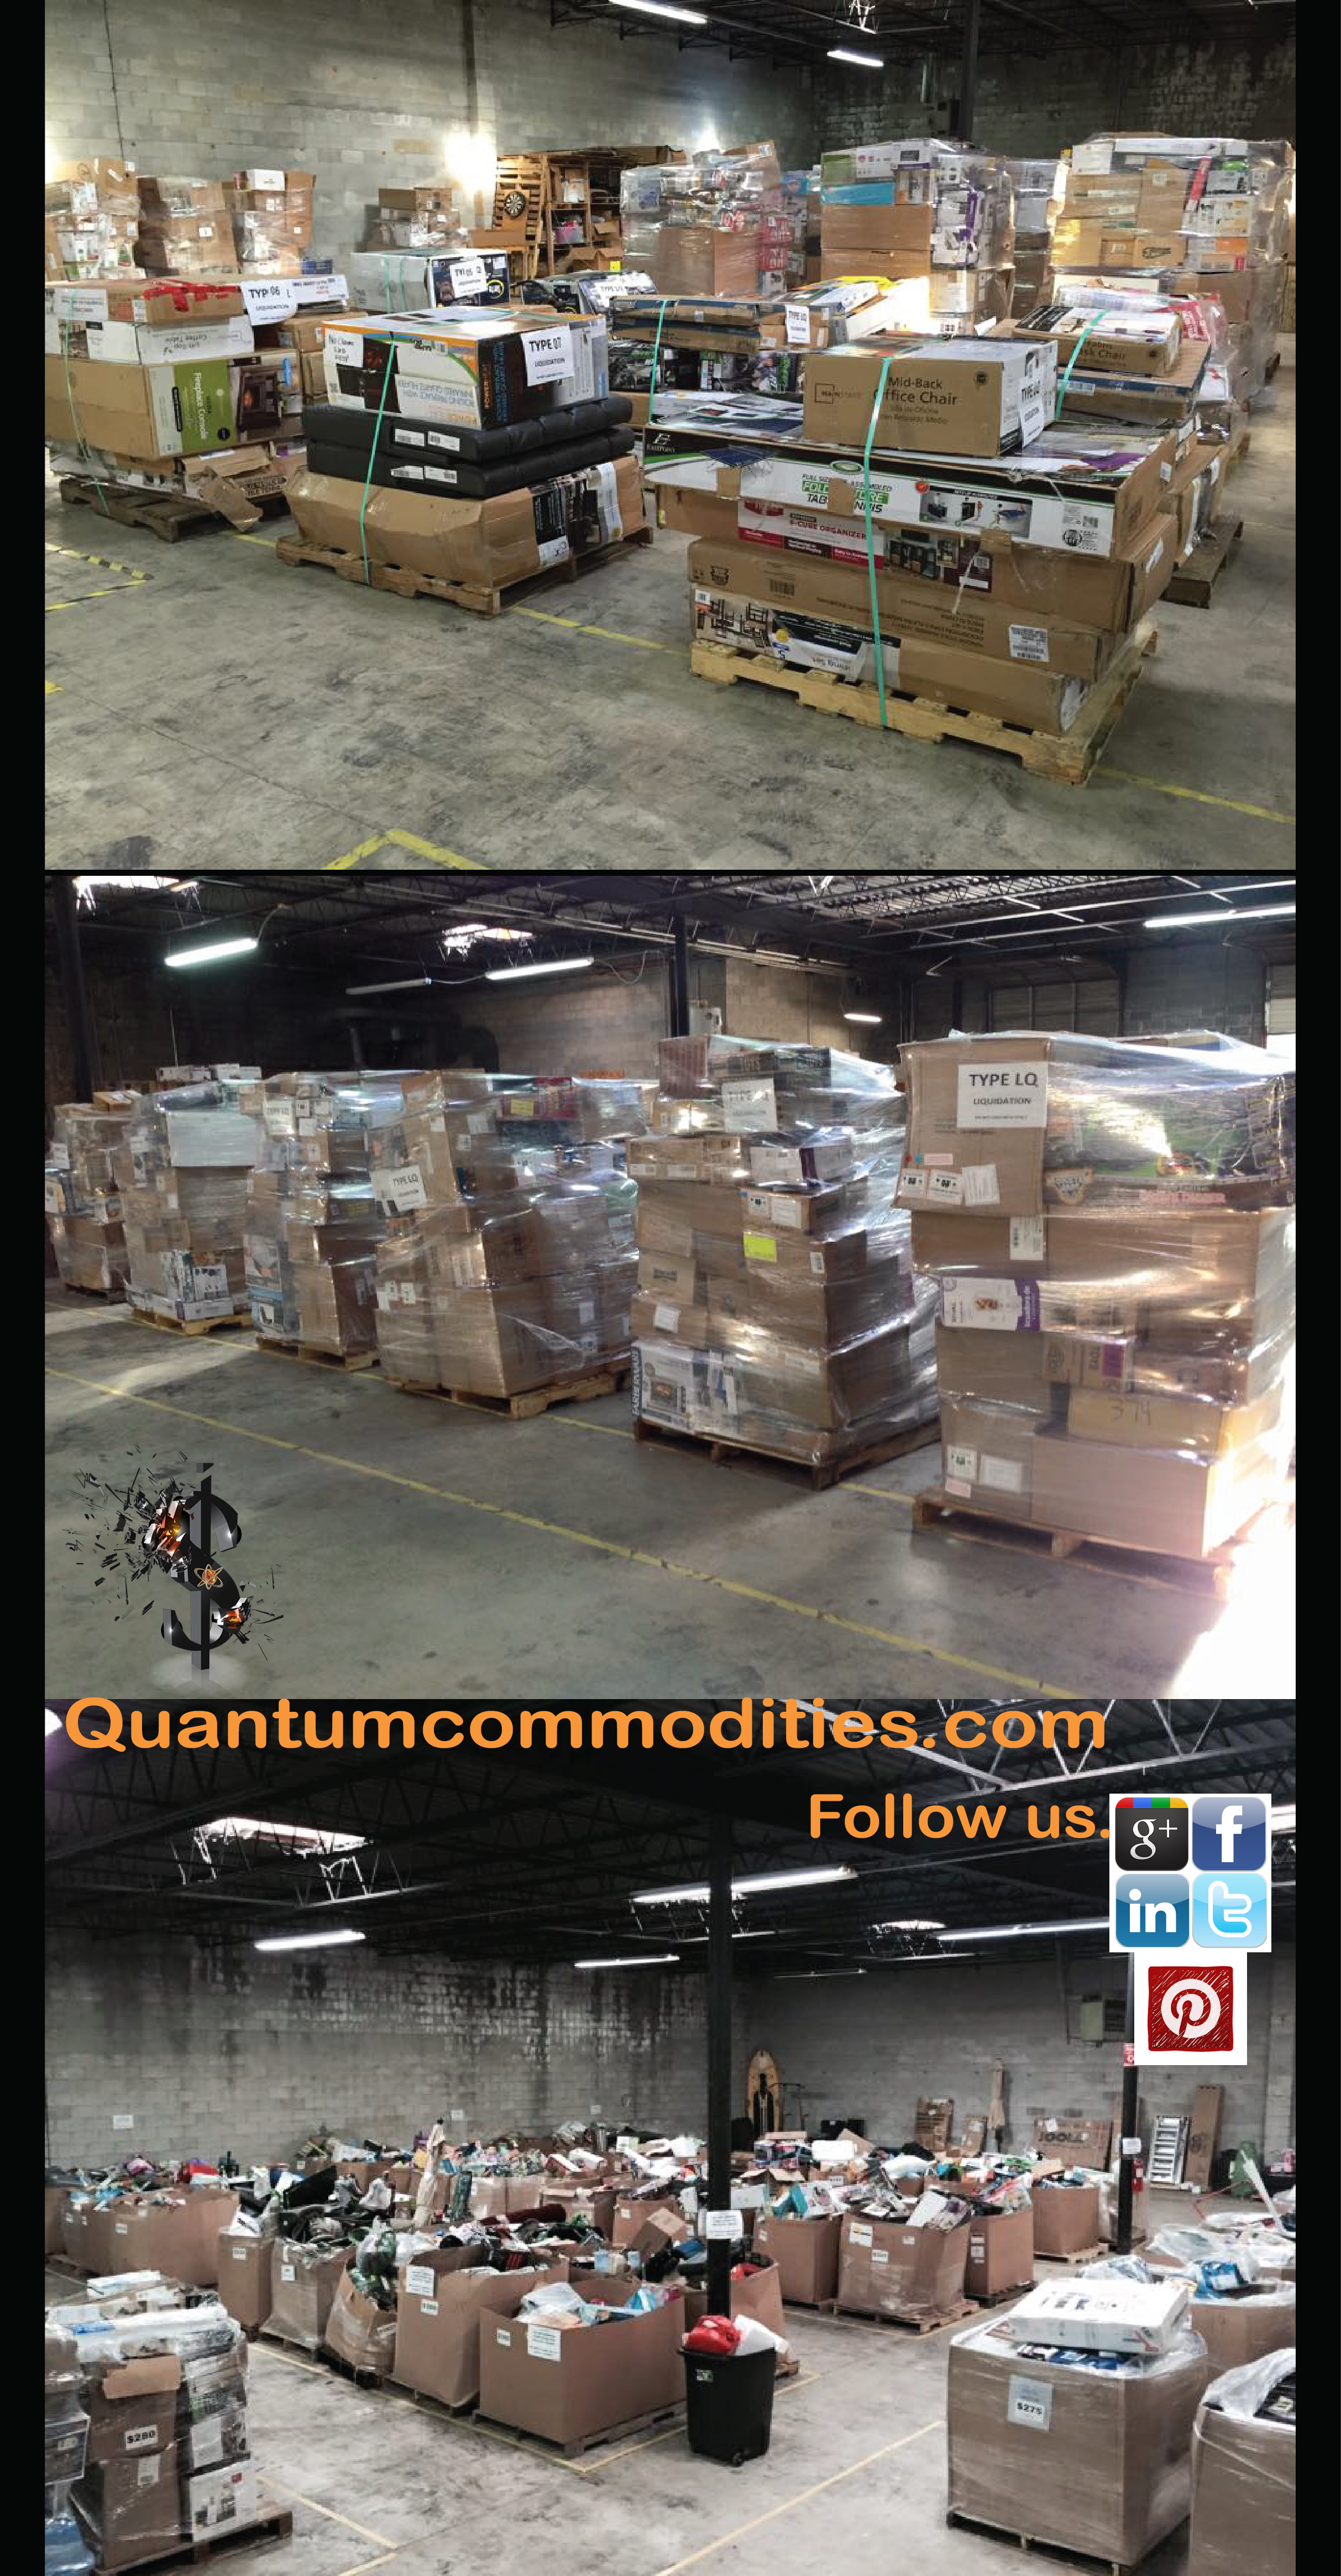 We are a Wholesale Supplier of Liquidation Merchandise that